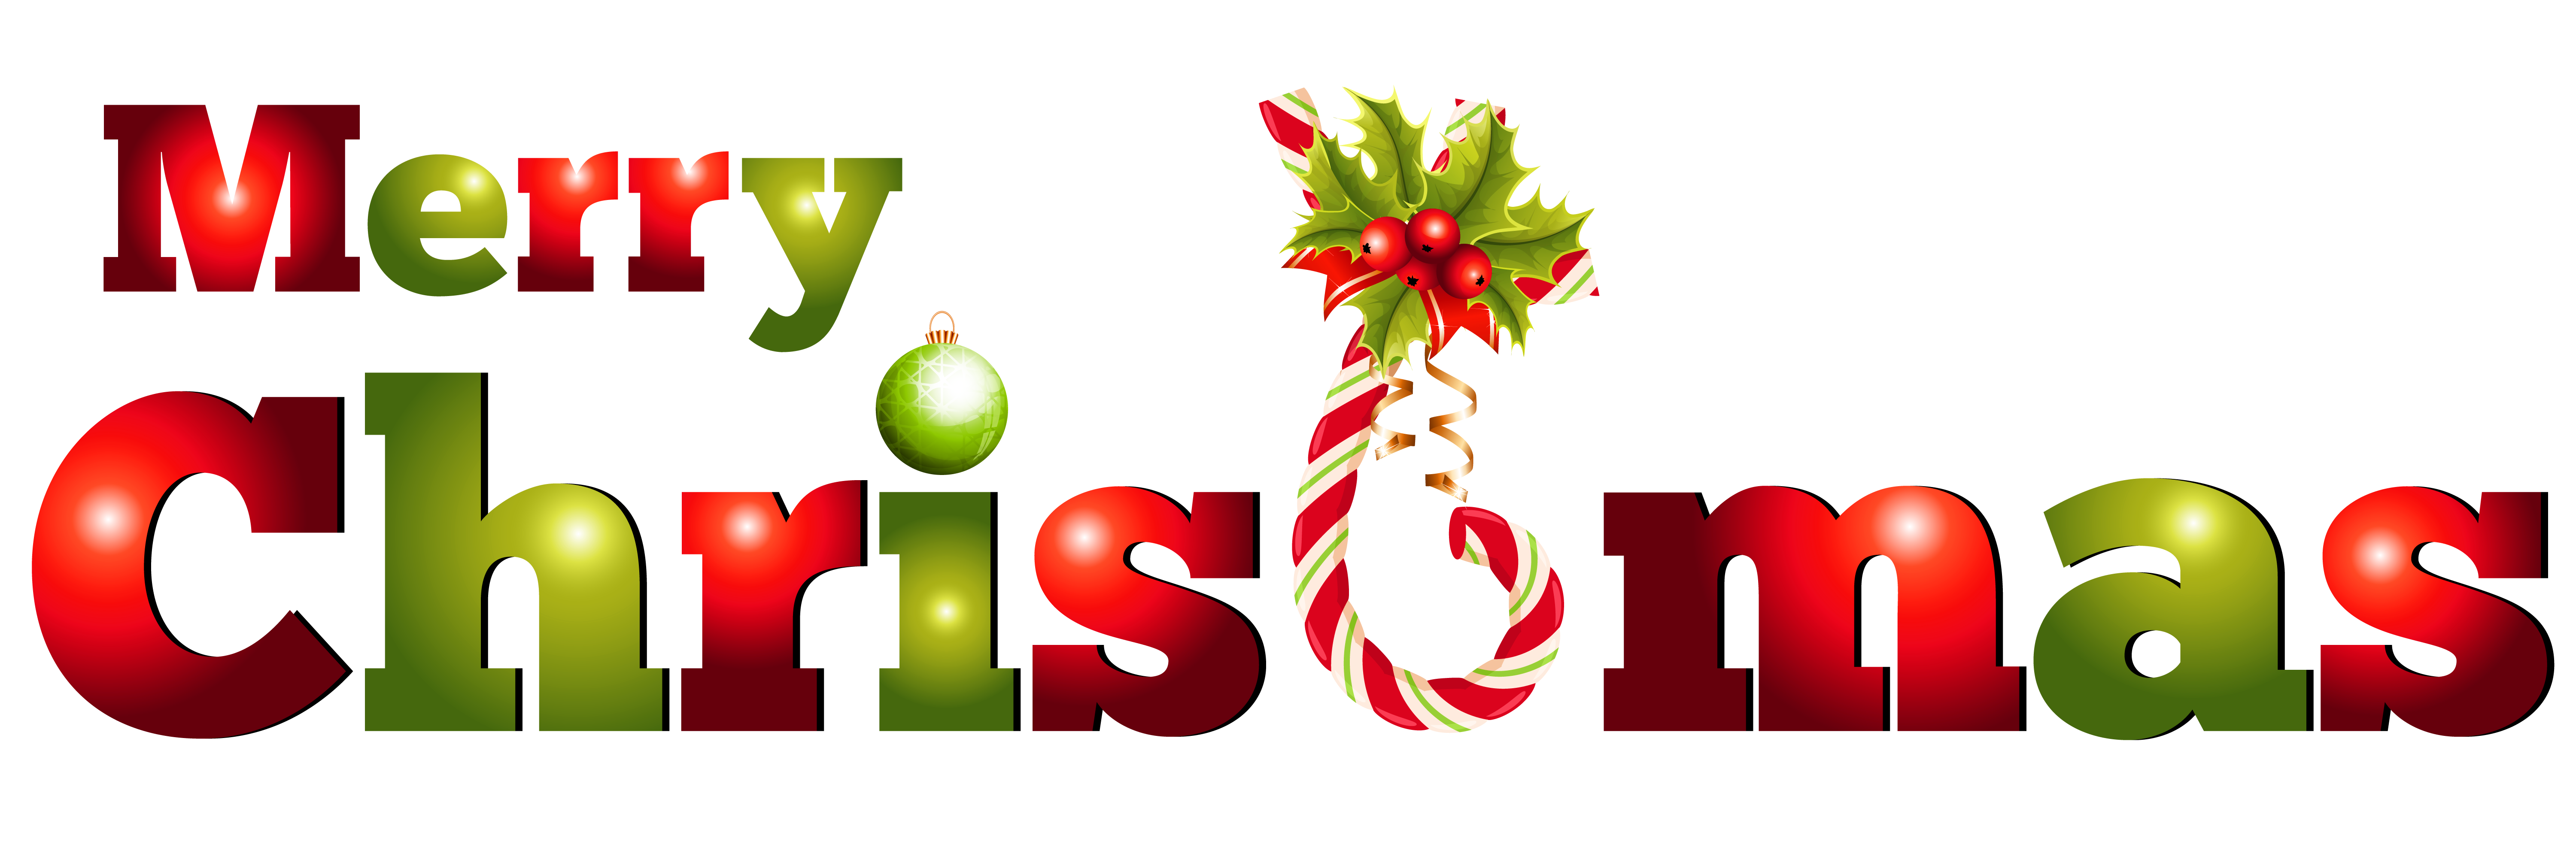 Mail clipart christmas mail. Transparent merry decor png